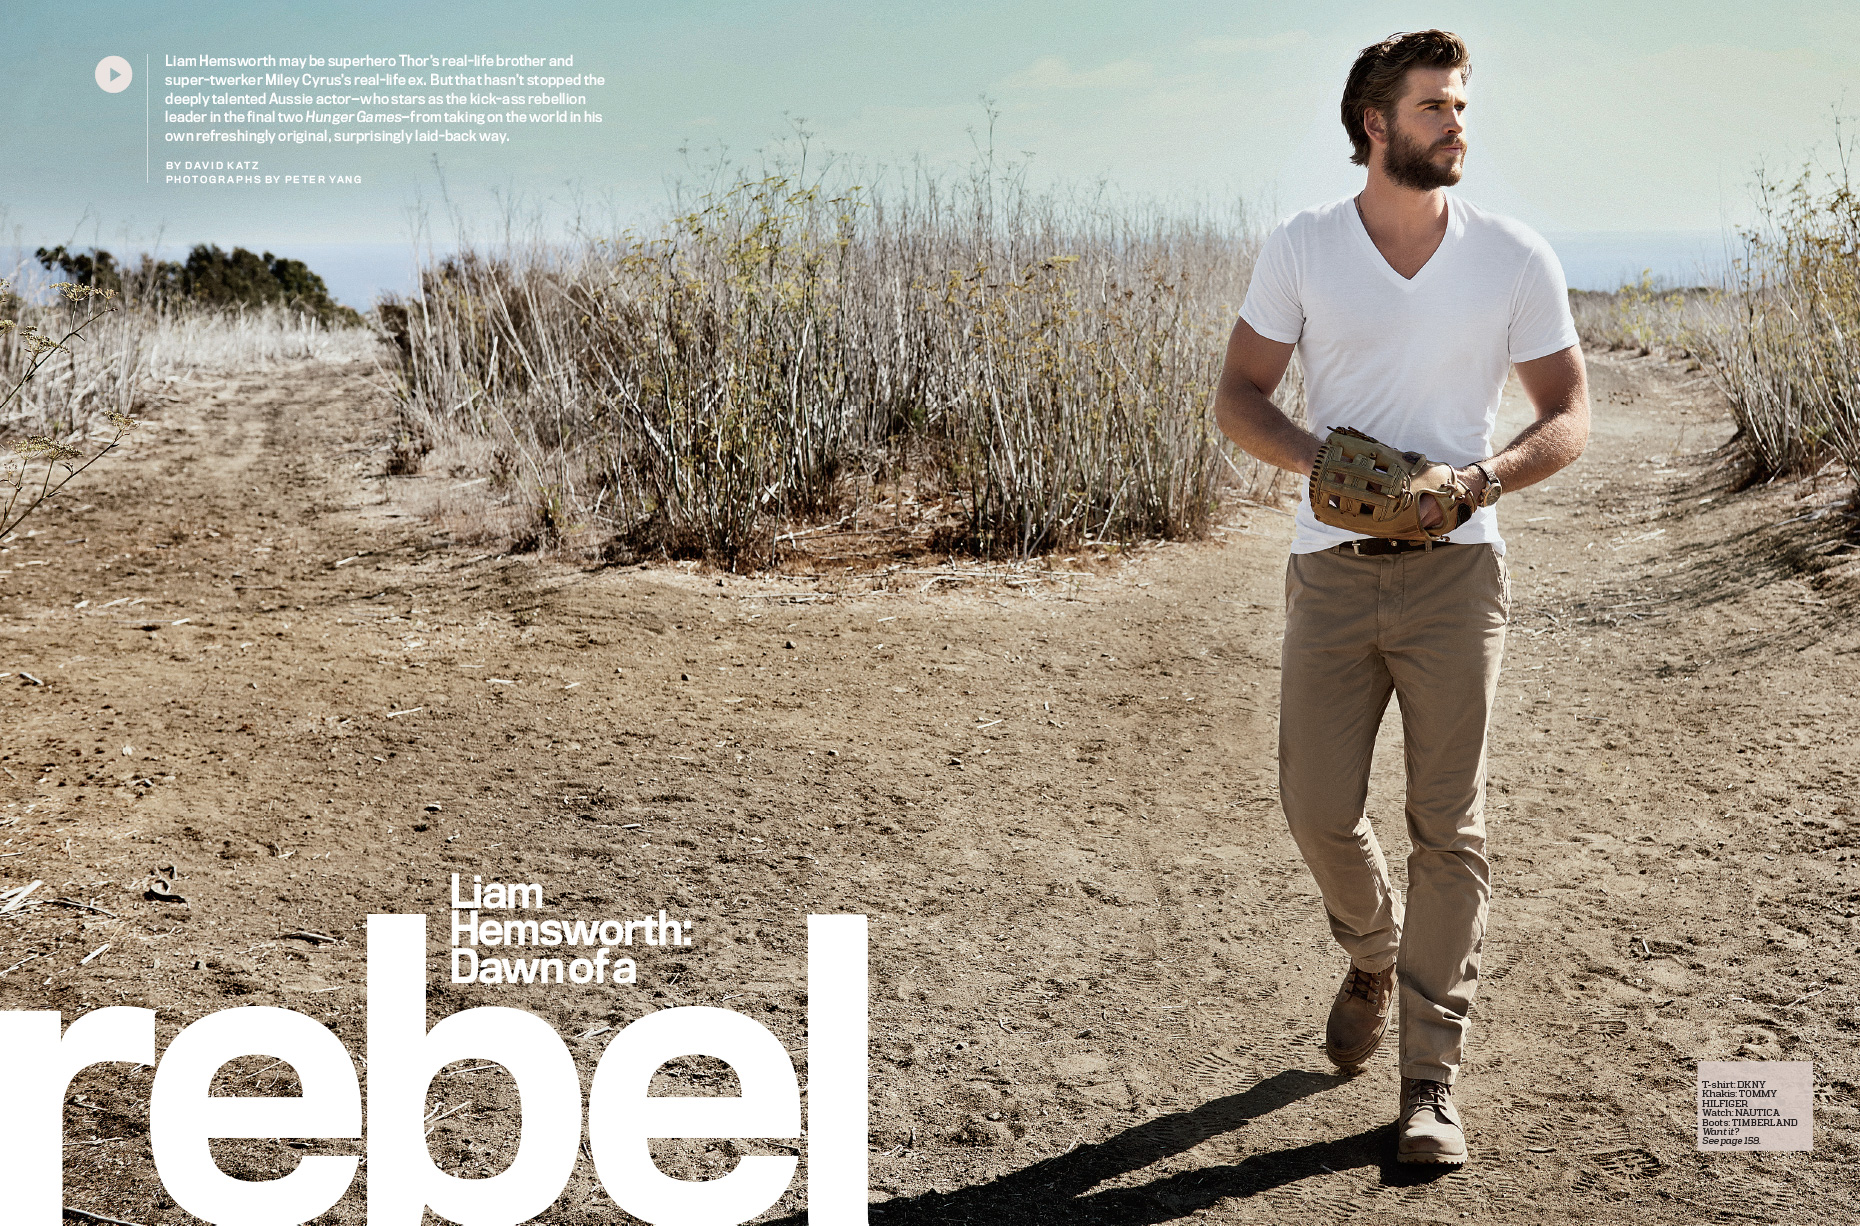 mensfitness_liamhemsworth_inside